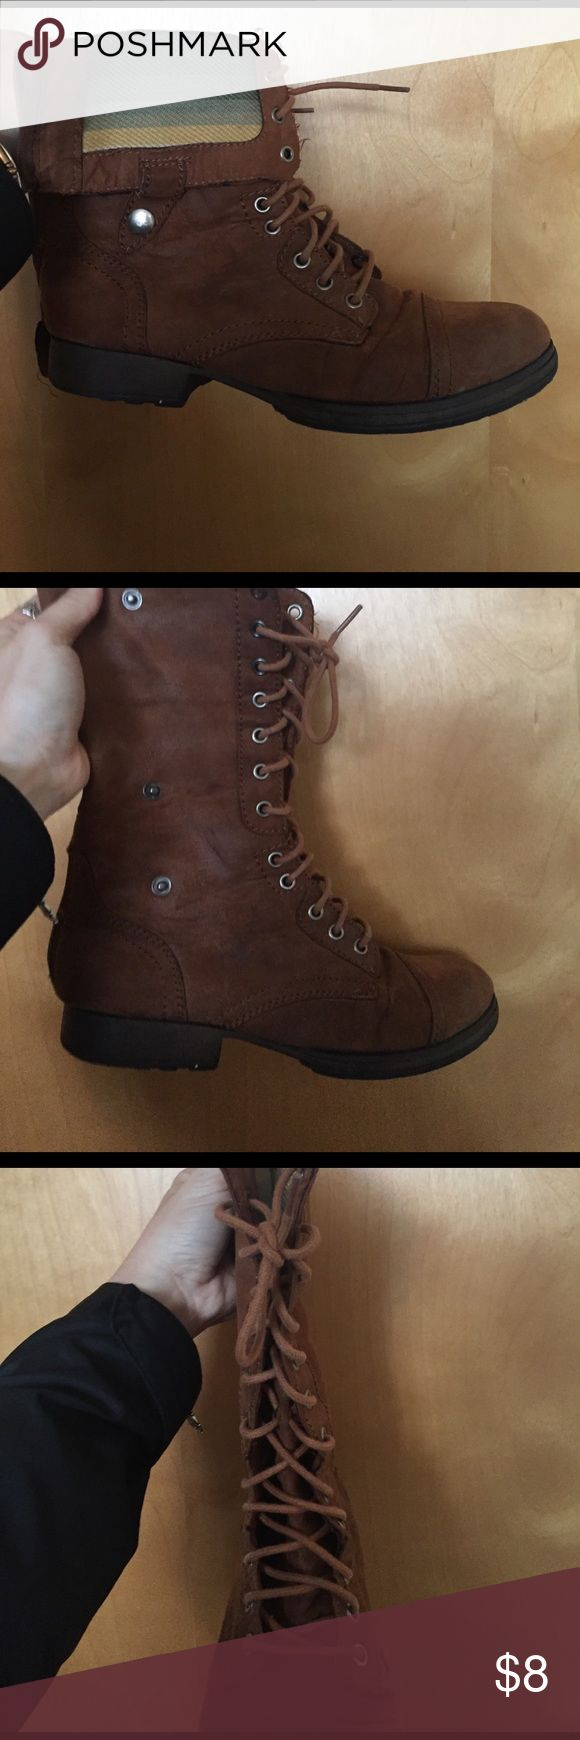 women's lace up boots Fake suede, lace up with zipper in back. Can be buttoned and folded down or worn all the way! Folded look falls upper ankle and zipped look falls lower calf. Super comfortable and cute! Shoes Ankle Boots & Booties